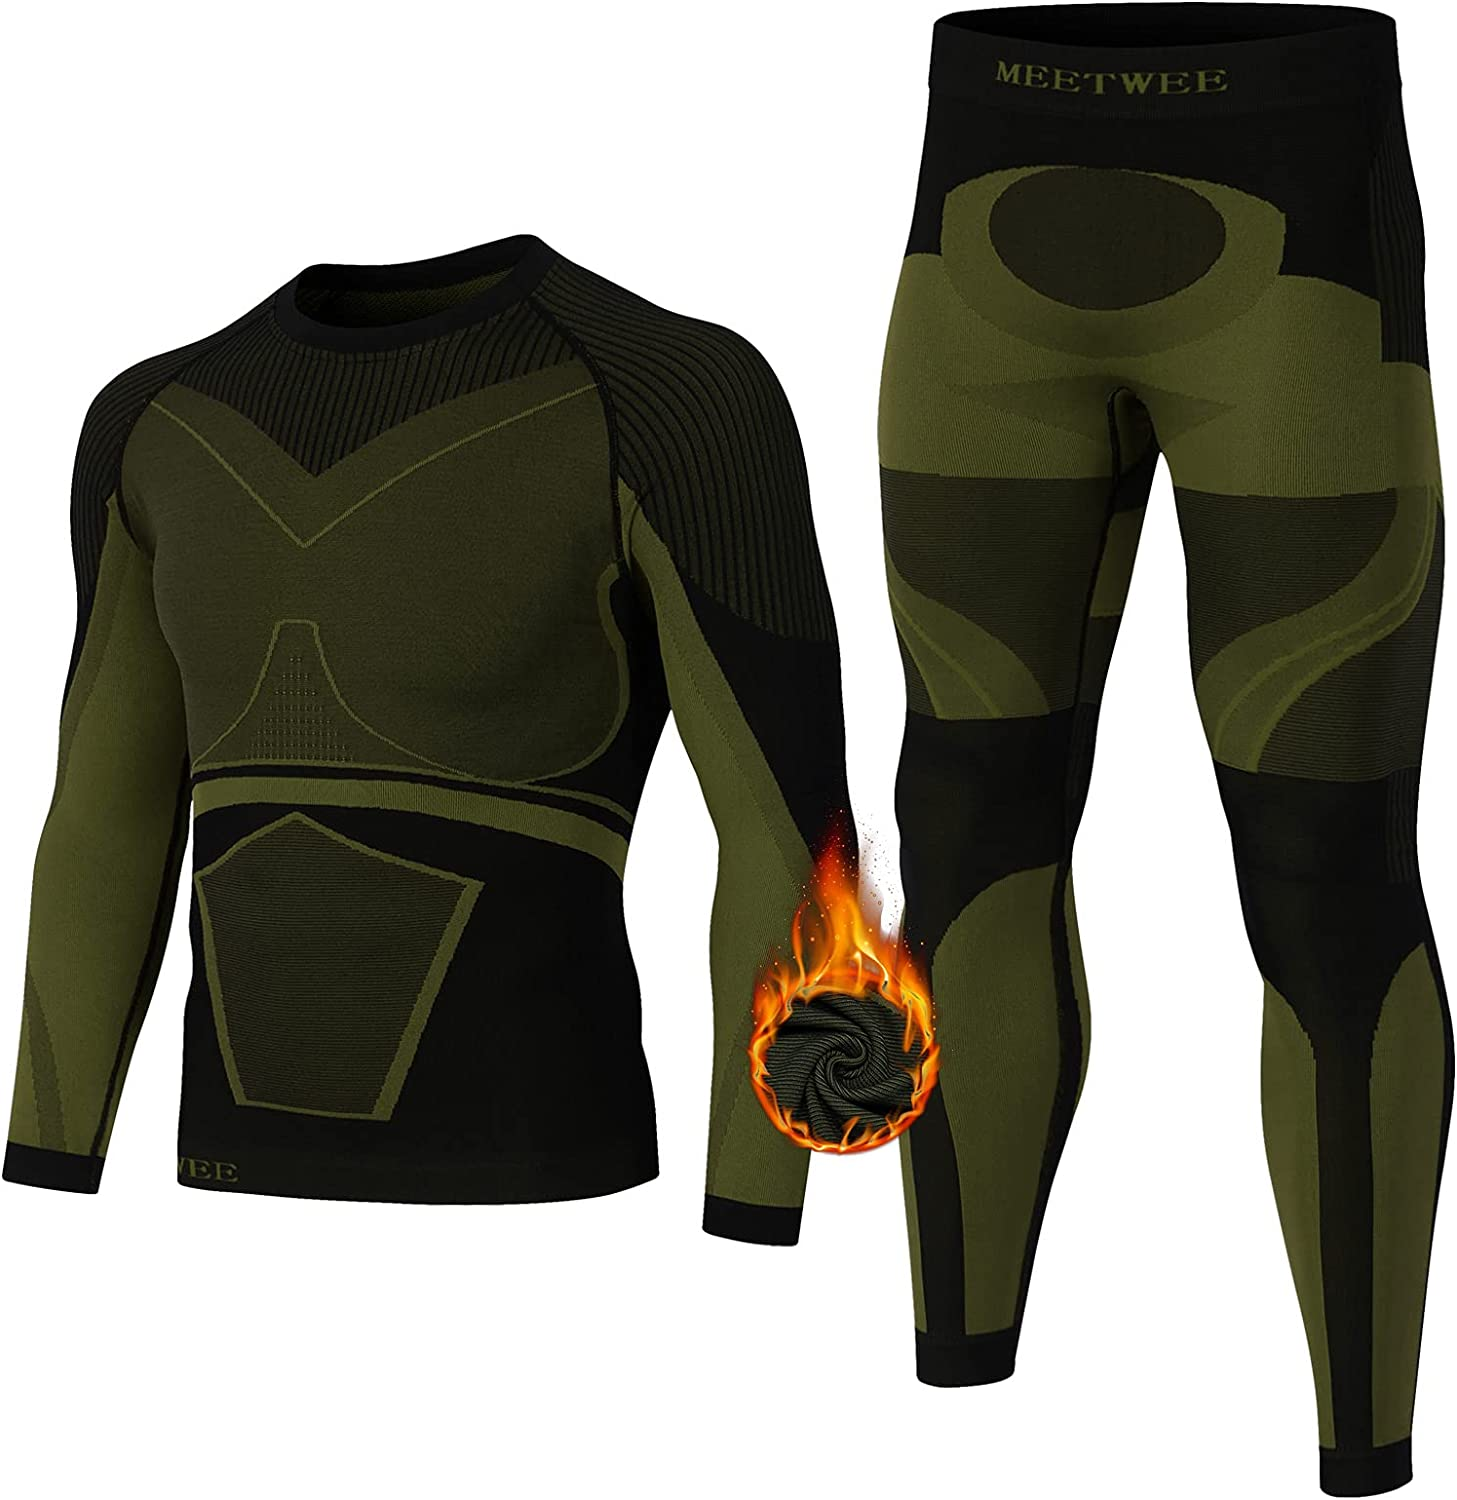 GOROBOY Men's Thermal Underwear, Cold Weather Base Layer Top & Bottom Set Quick Dry Winter Compression Long Johns Heated Gear